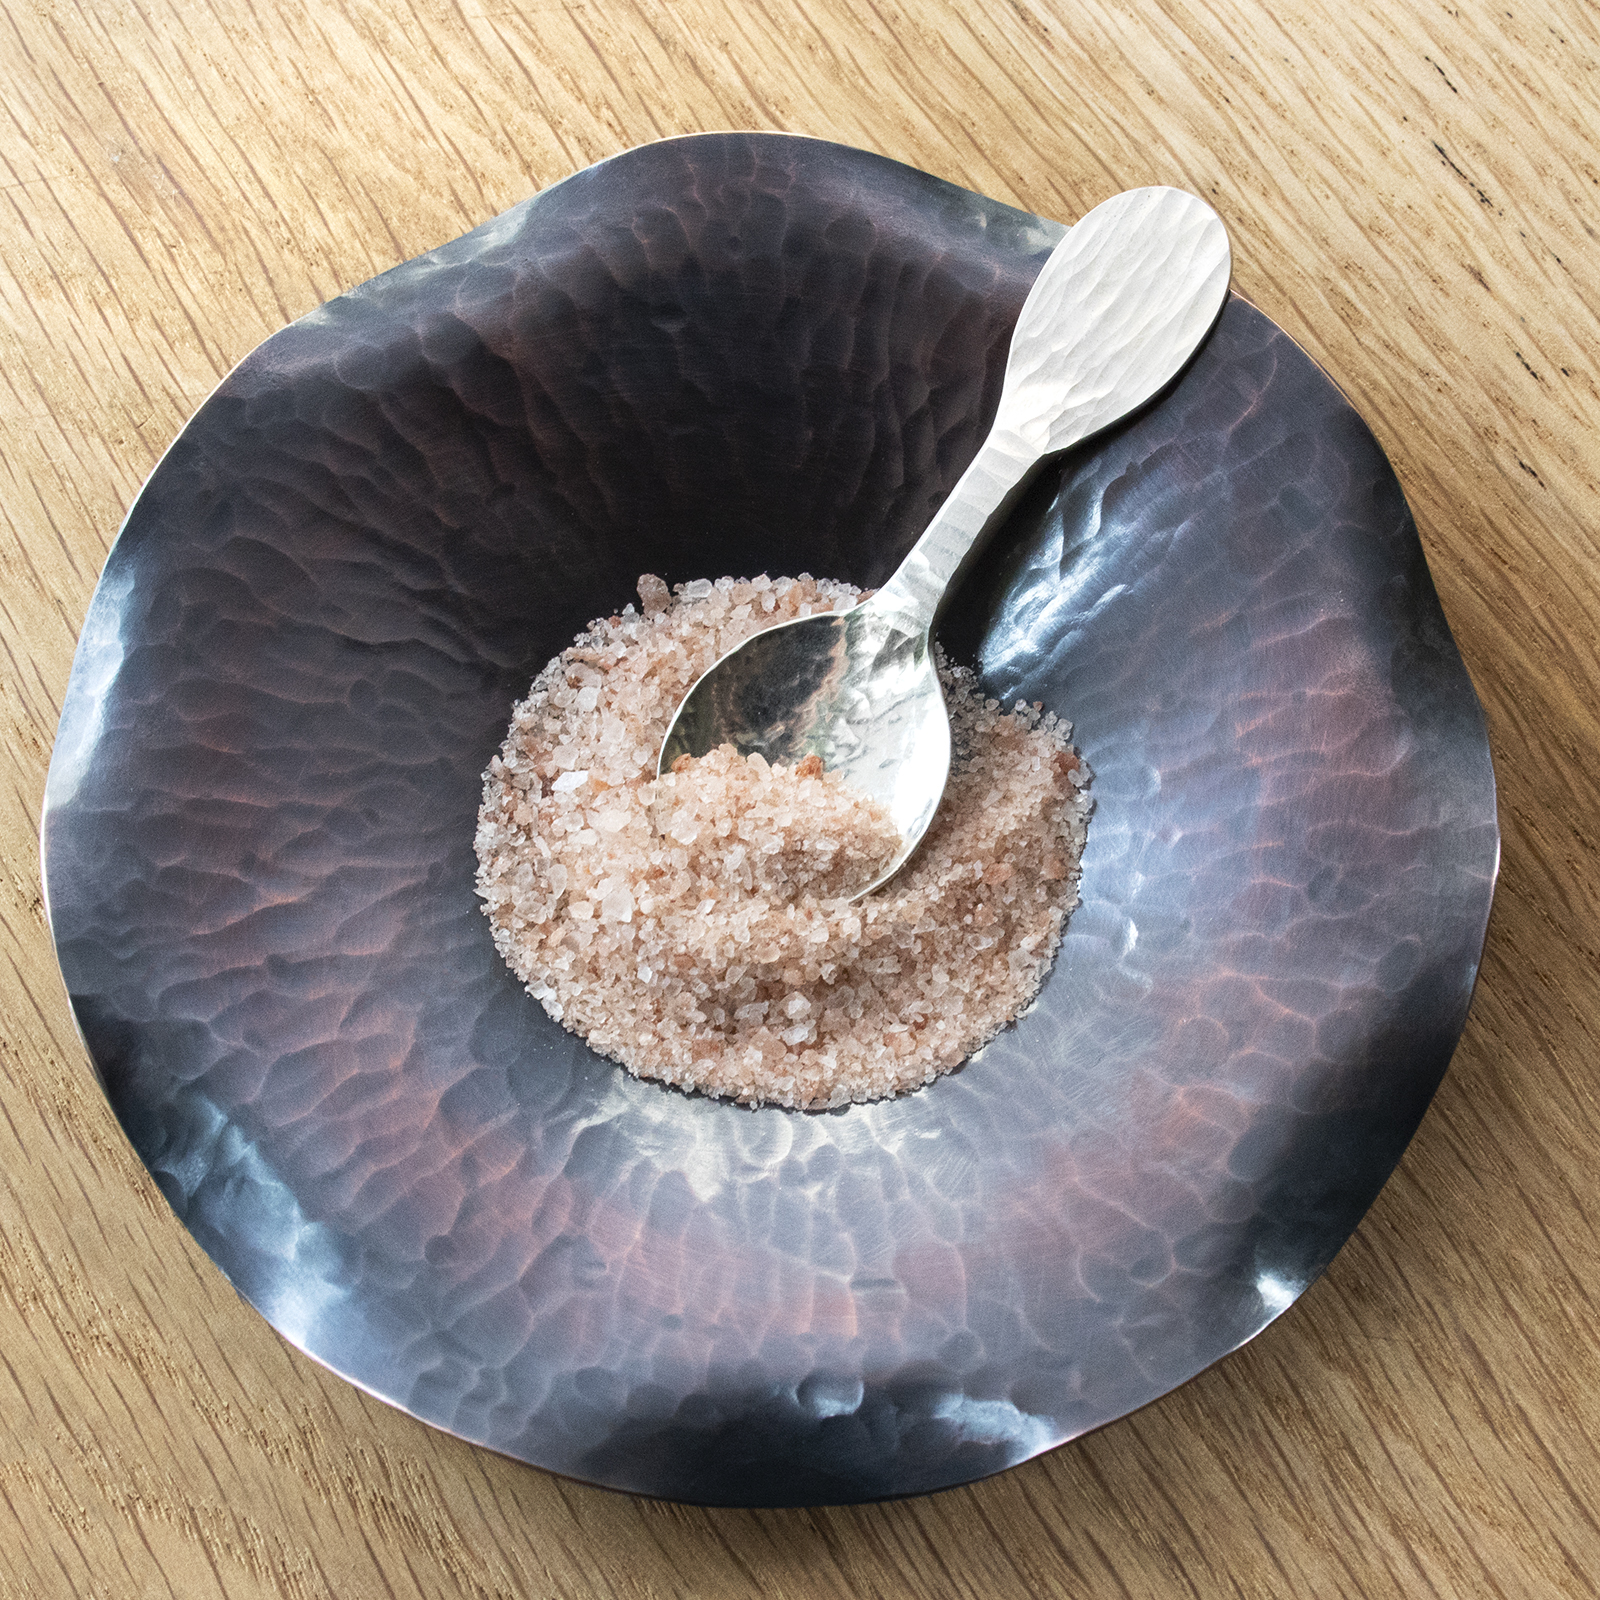 SS tasting spoon in dark dish with salt